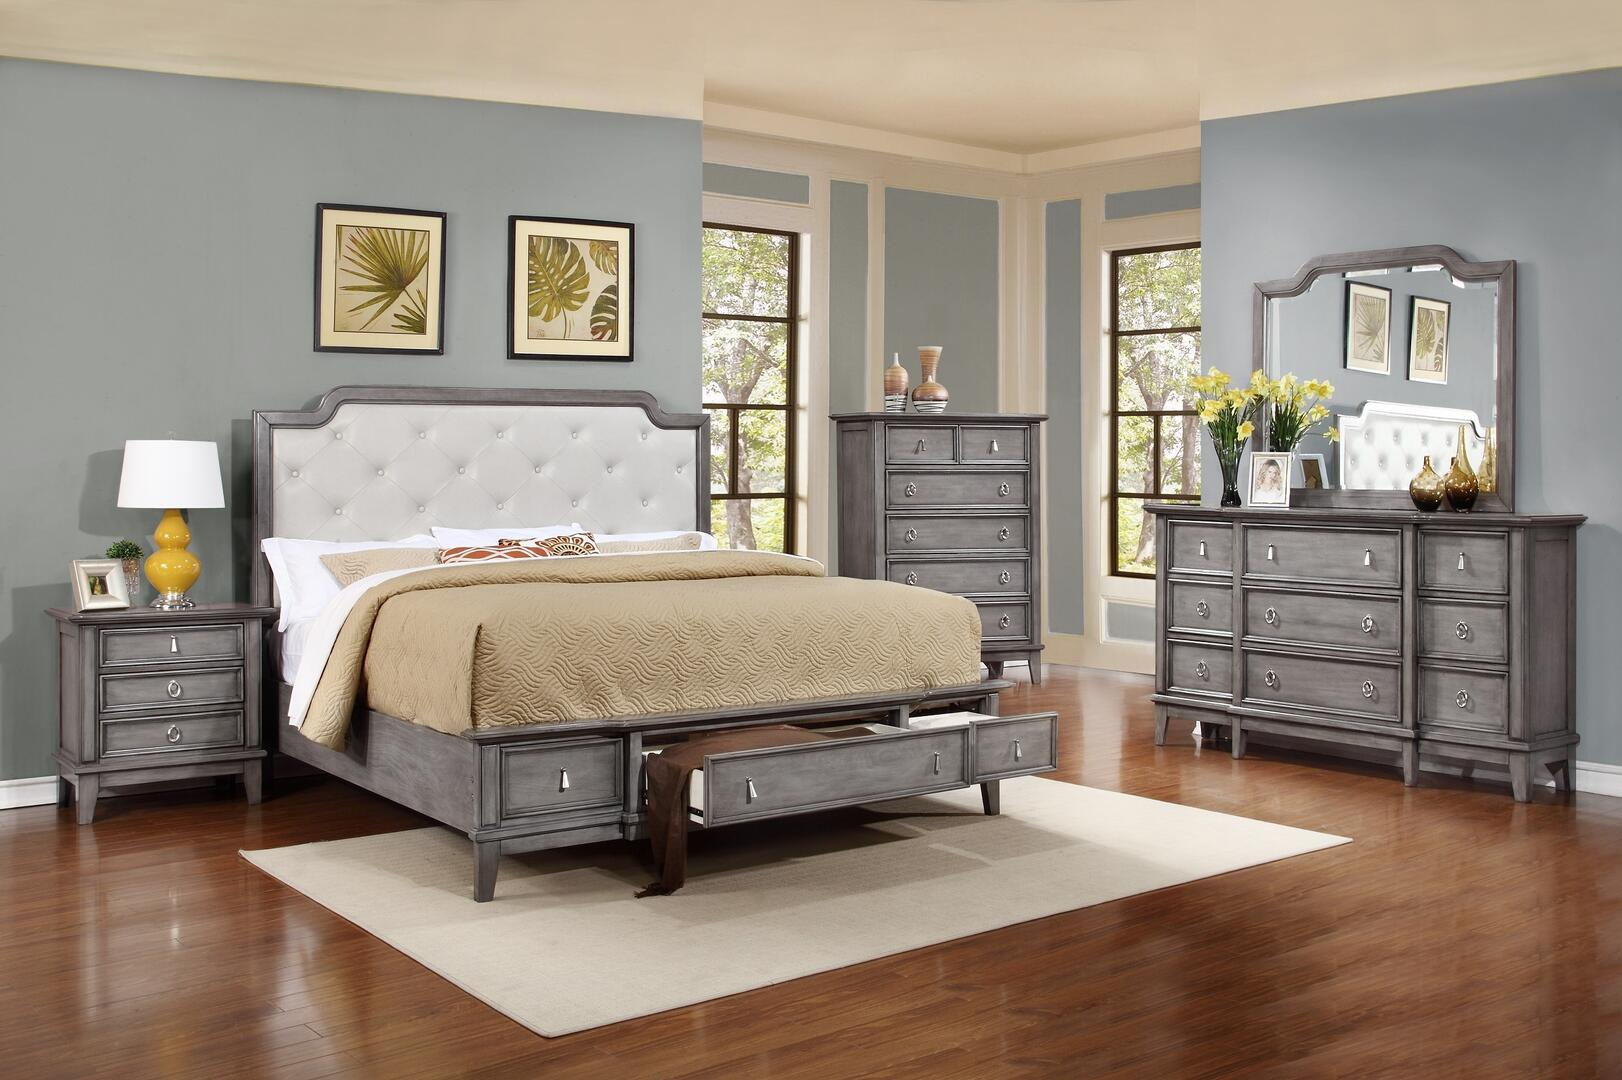 Myco Furniture An521kset Anastasia King Bedroom Sets Appliances